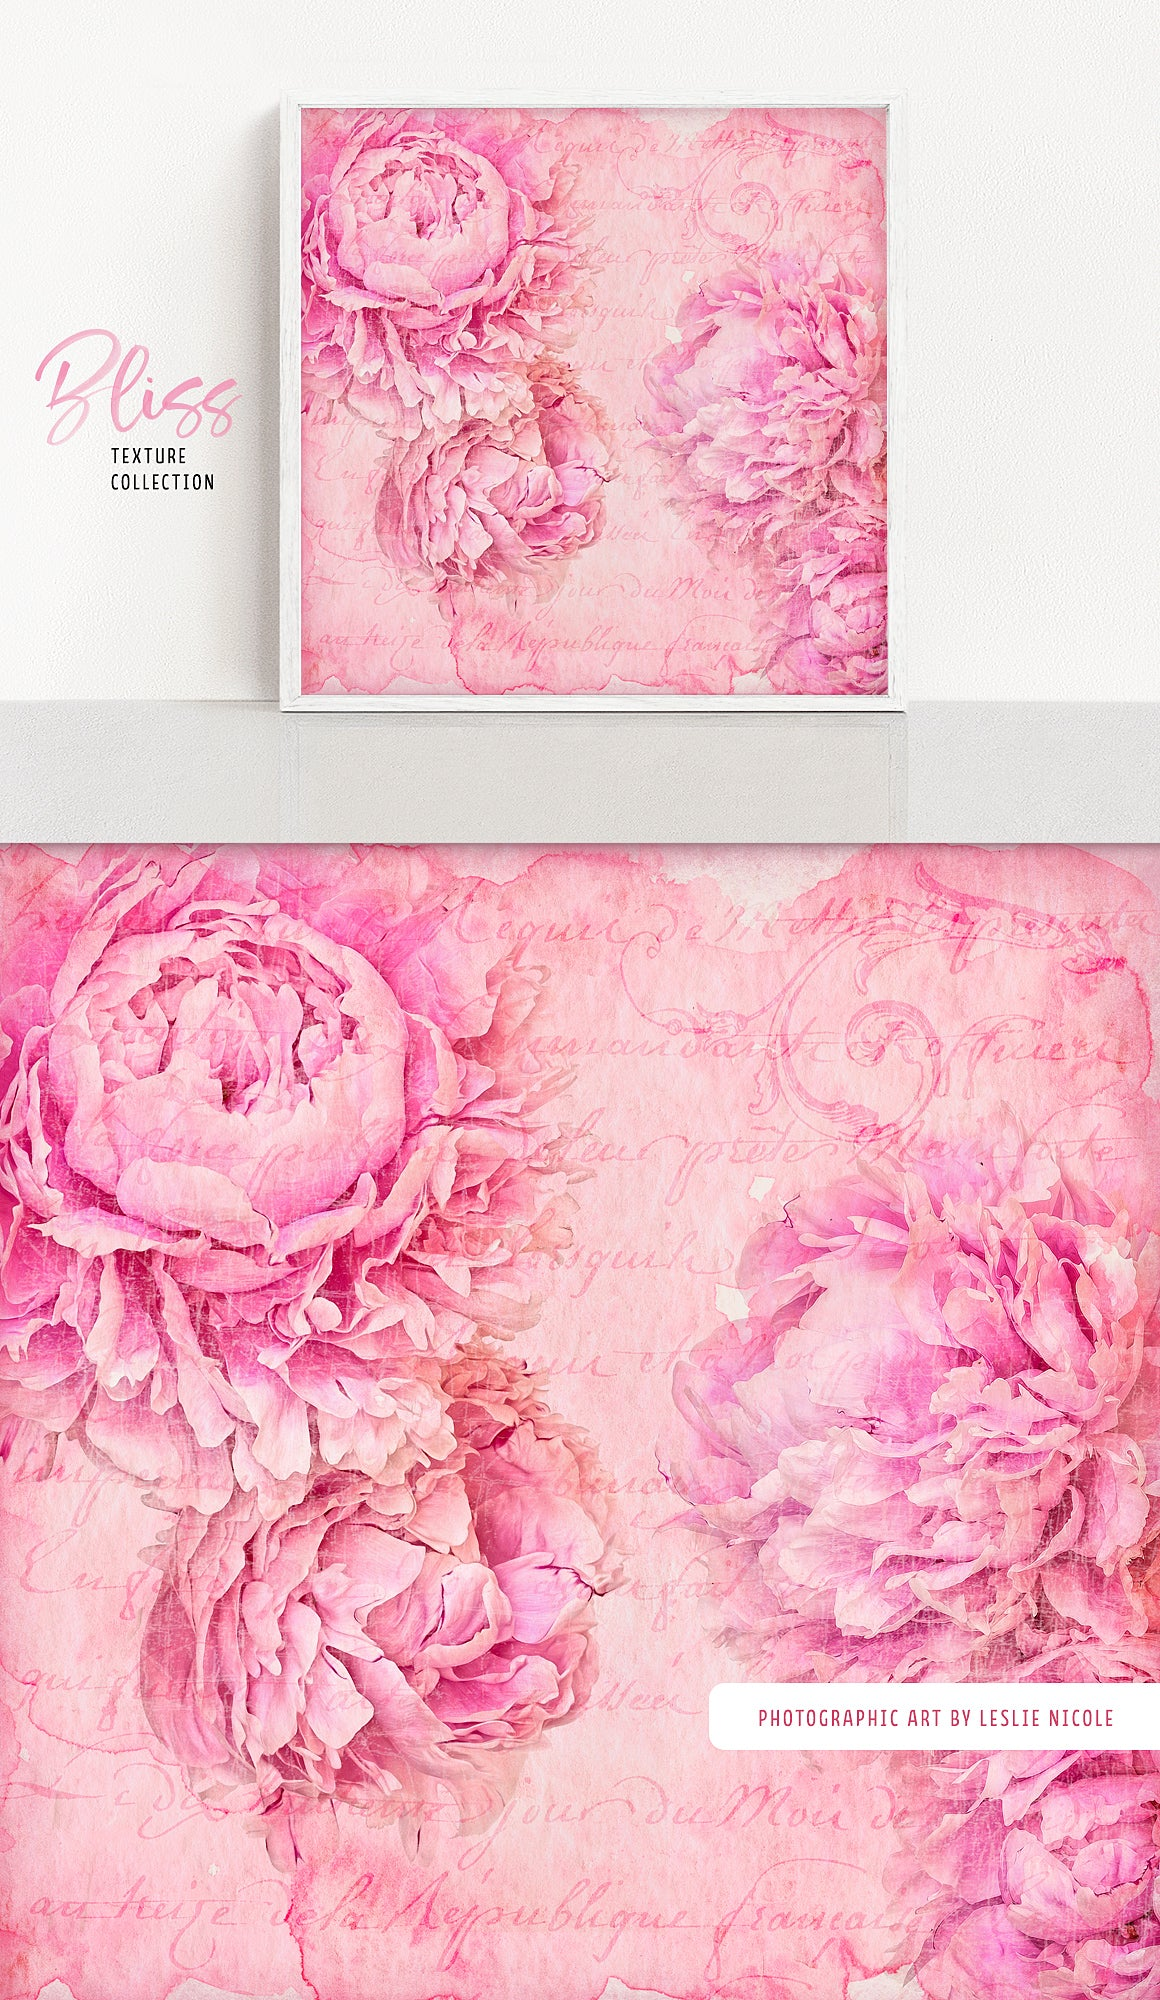 Watercolor texture with peonies using the Complete Inspirational Textures and Elements Collection.